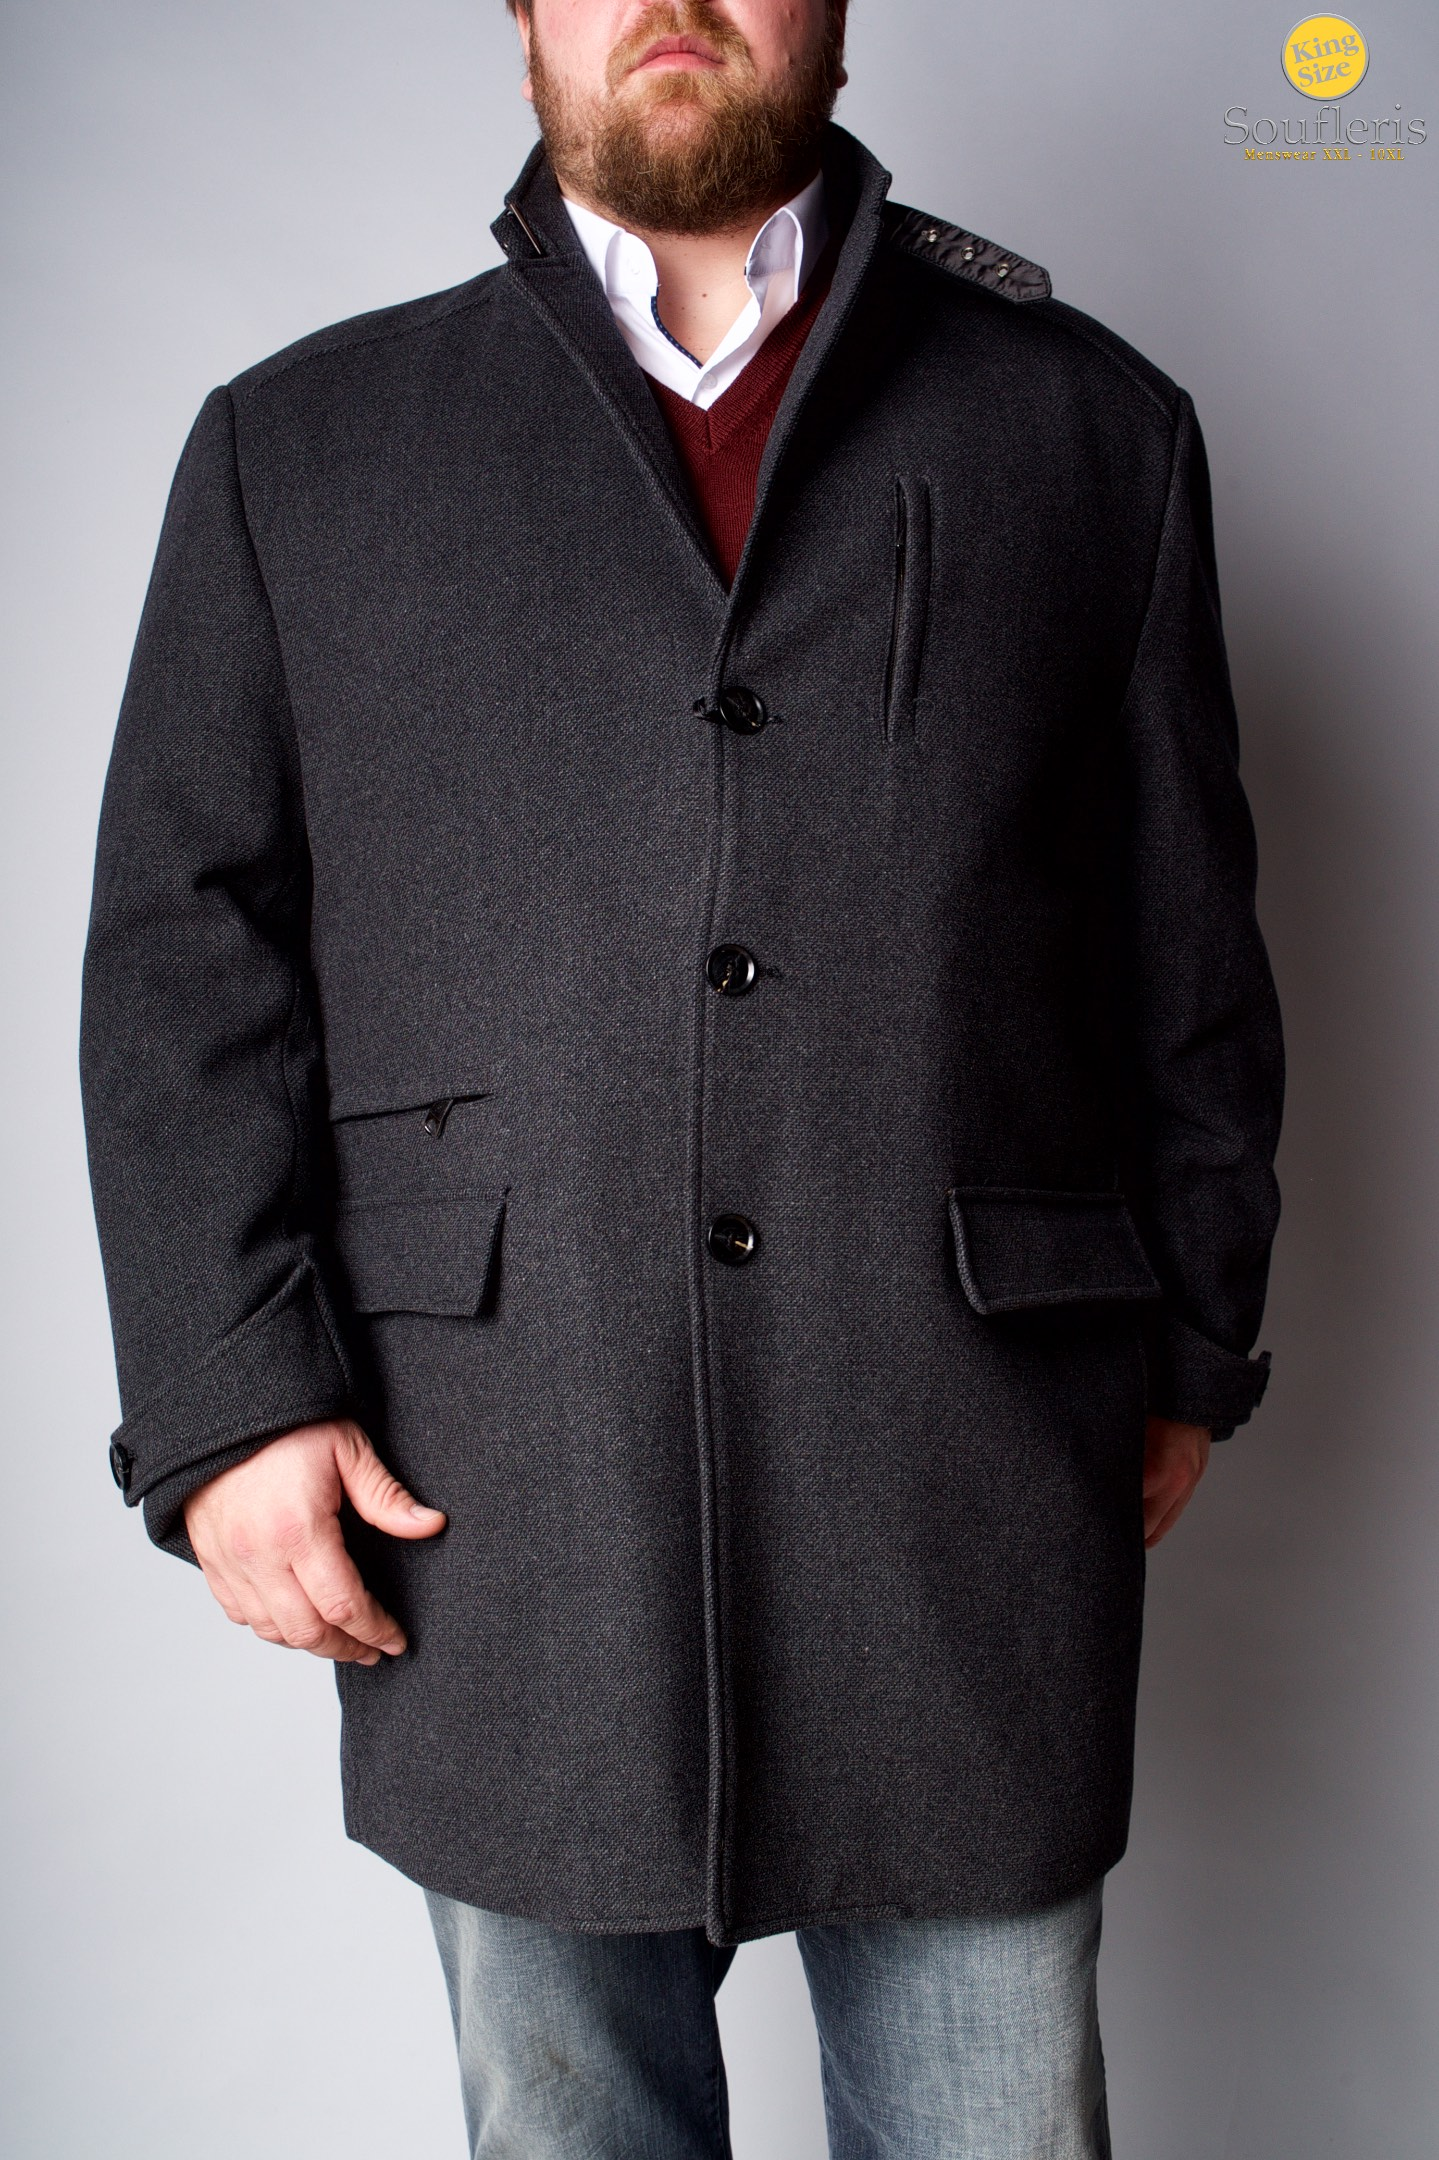 f19fd7bed8bf ΠΑΝΩΦΟΡΙΑ   ΠΑΛΤΟ MASTER TAILOR - 00000390 - ΓΚΡΙ